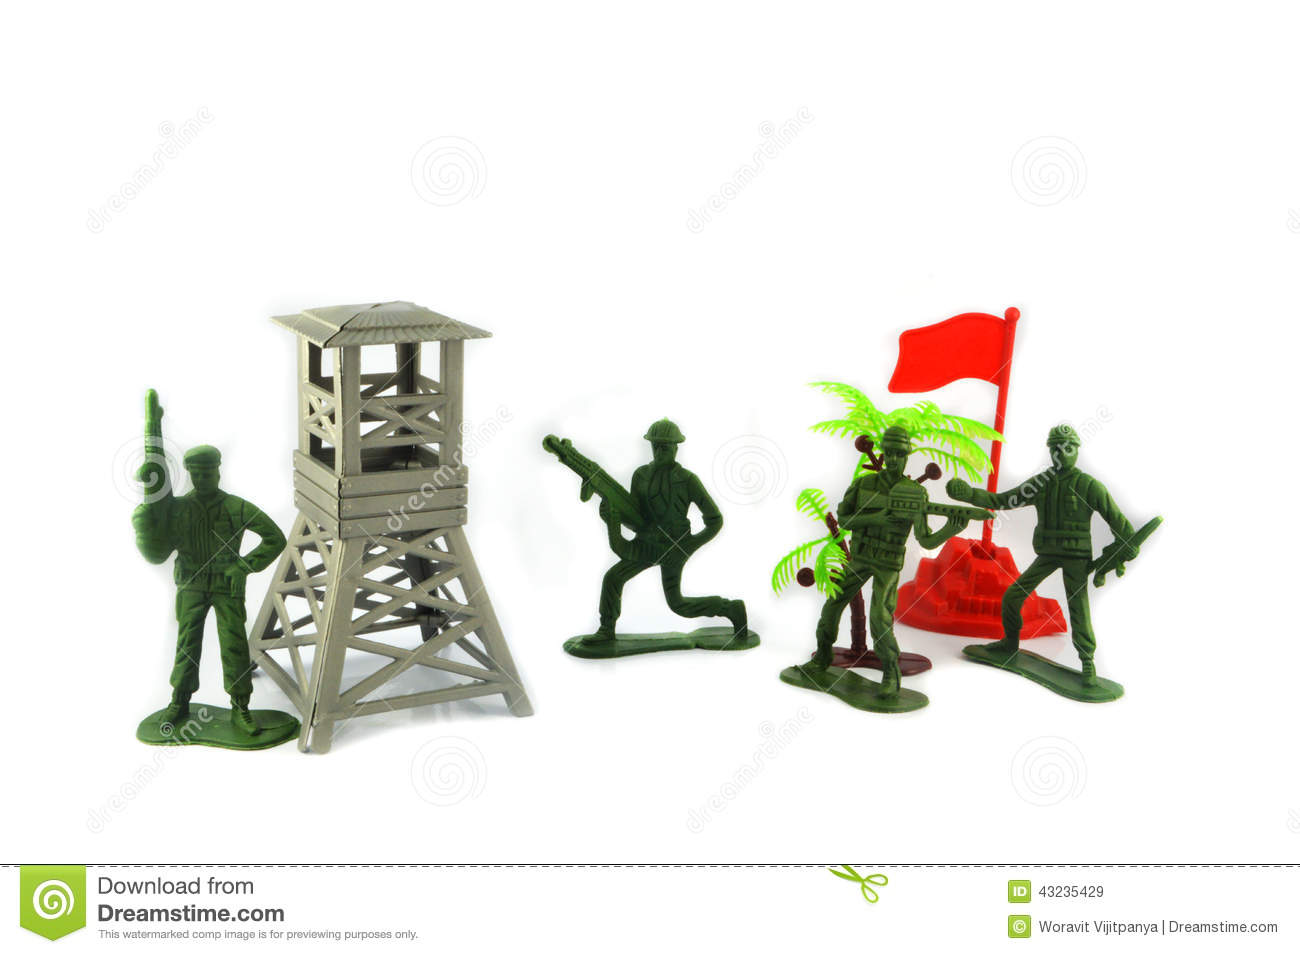 Toy Soldiers And Military Base Stock Photo - Image: 43235429